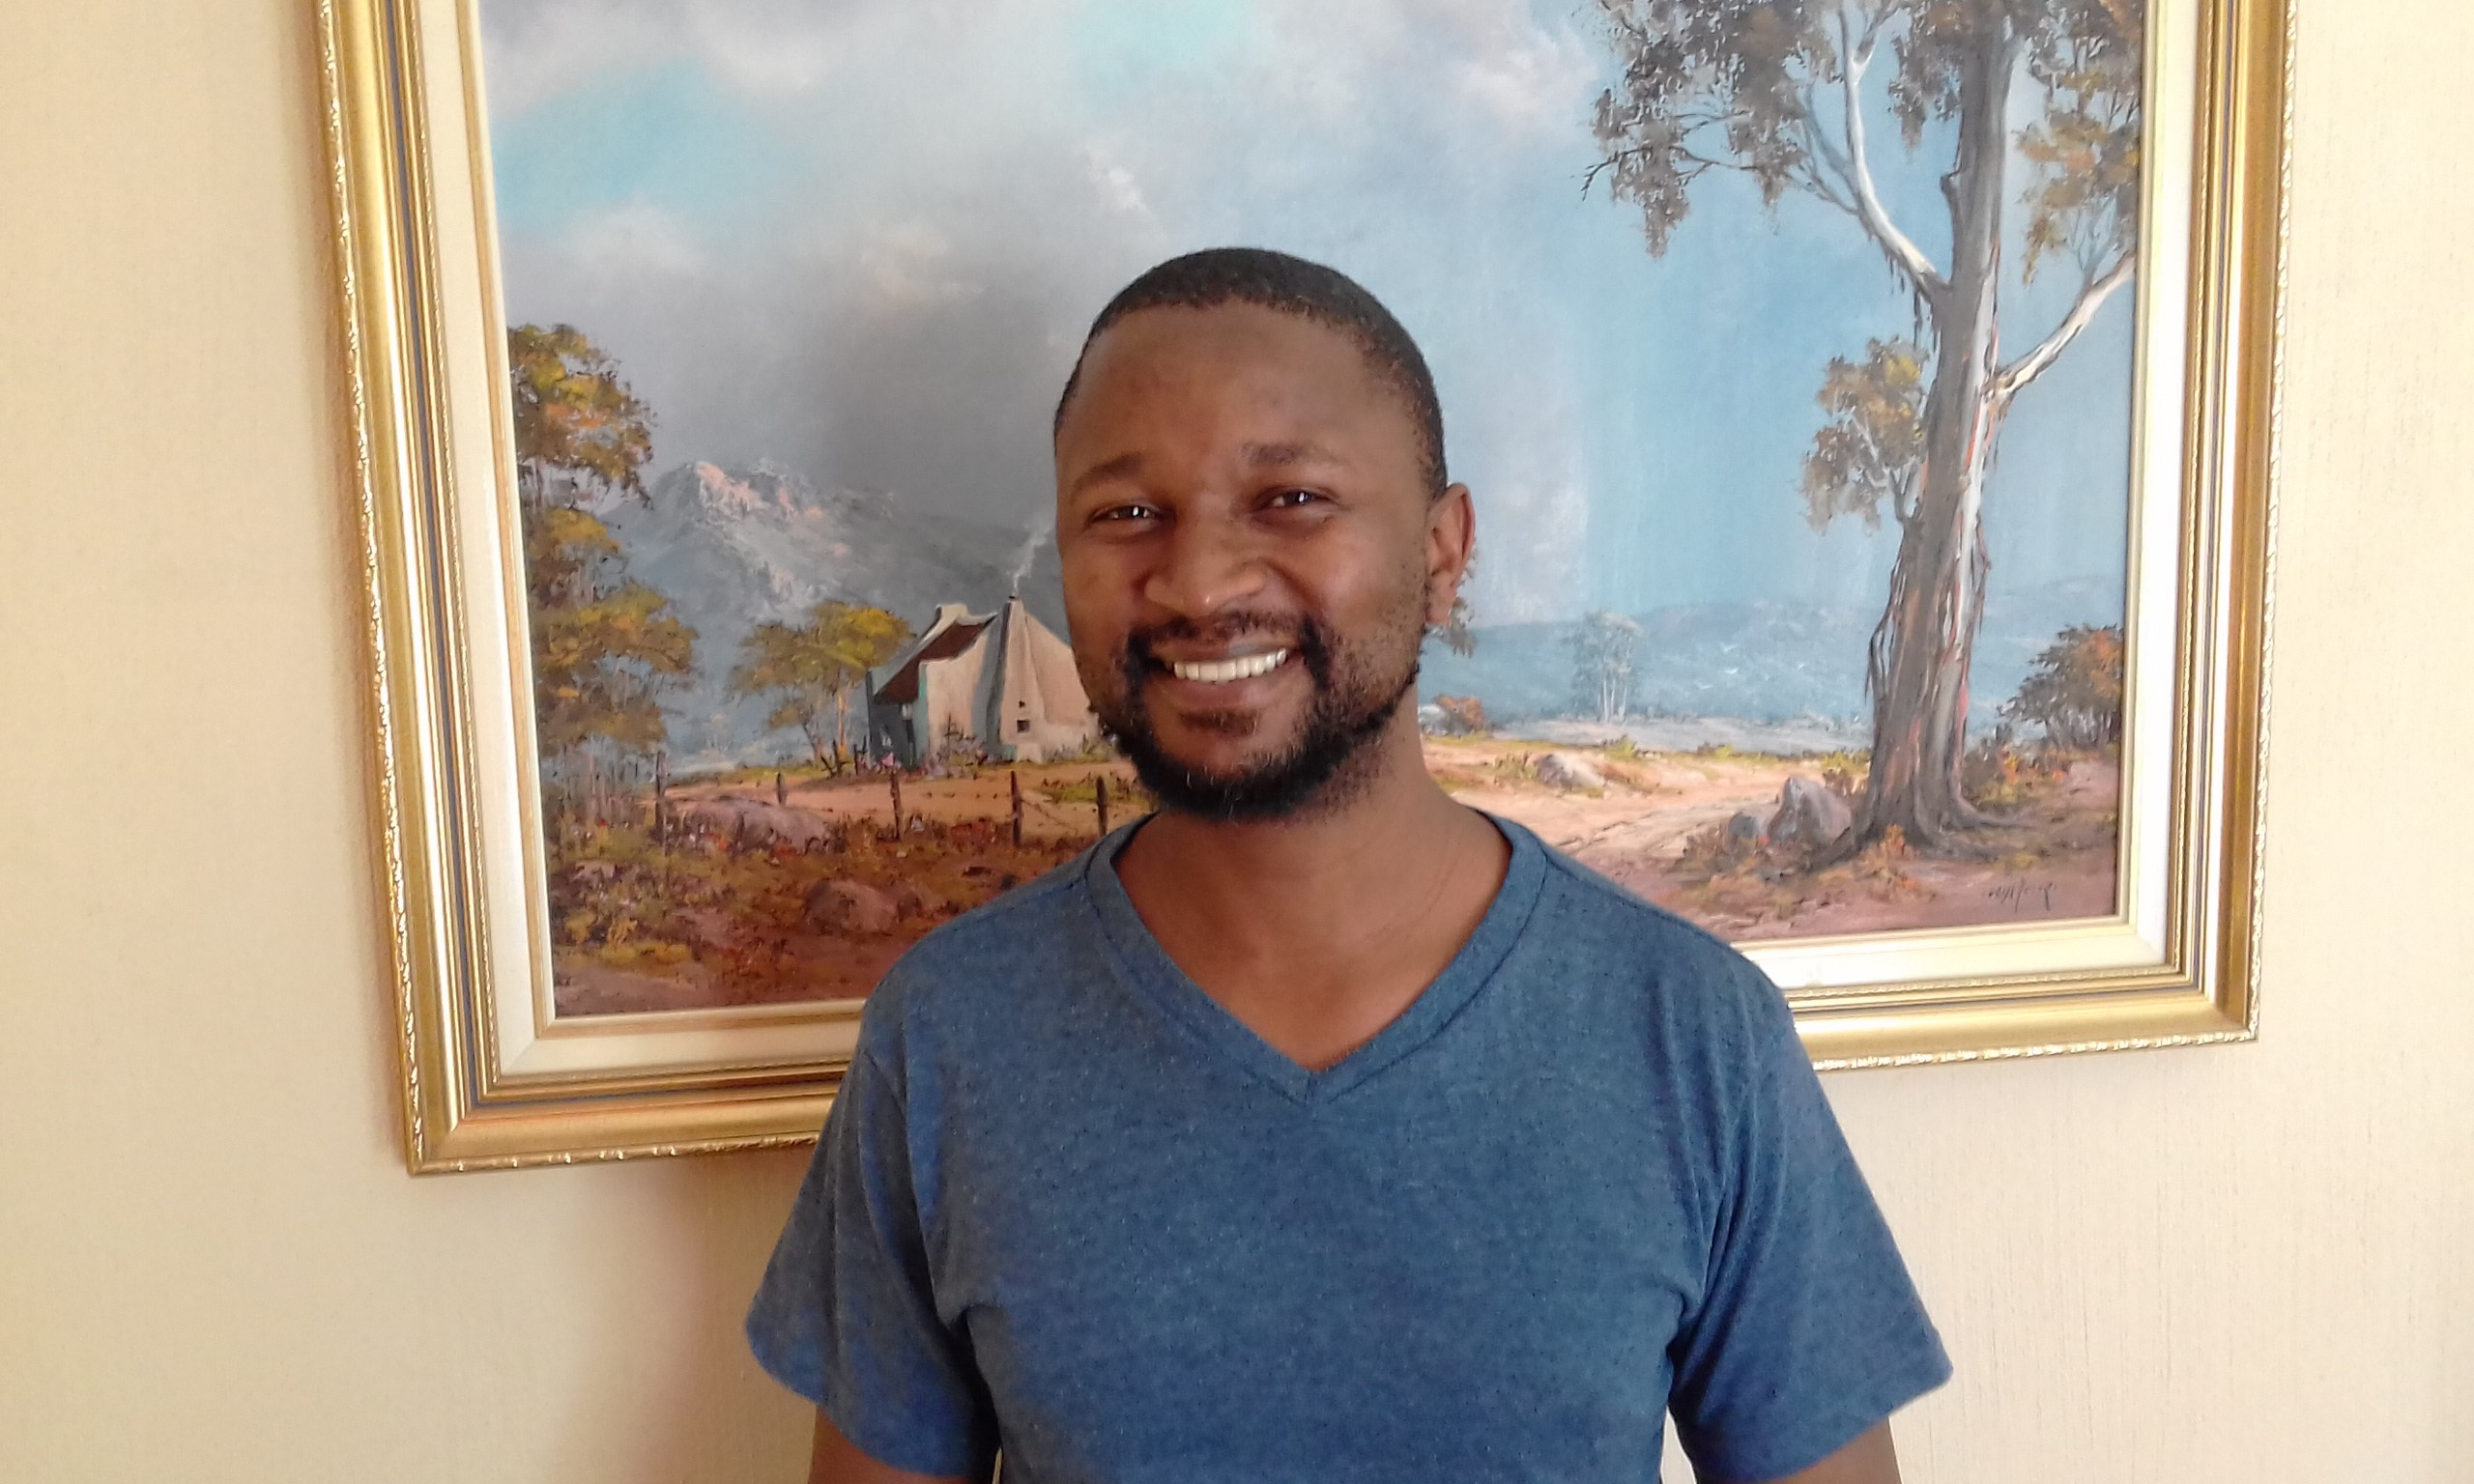 Max Thubela attended 'Social Media Marketing (SMM) - How to Use Facebook for Business'